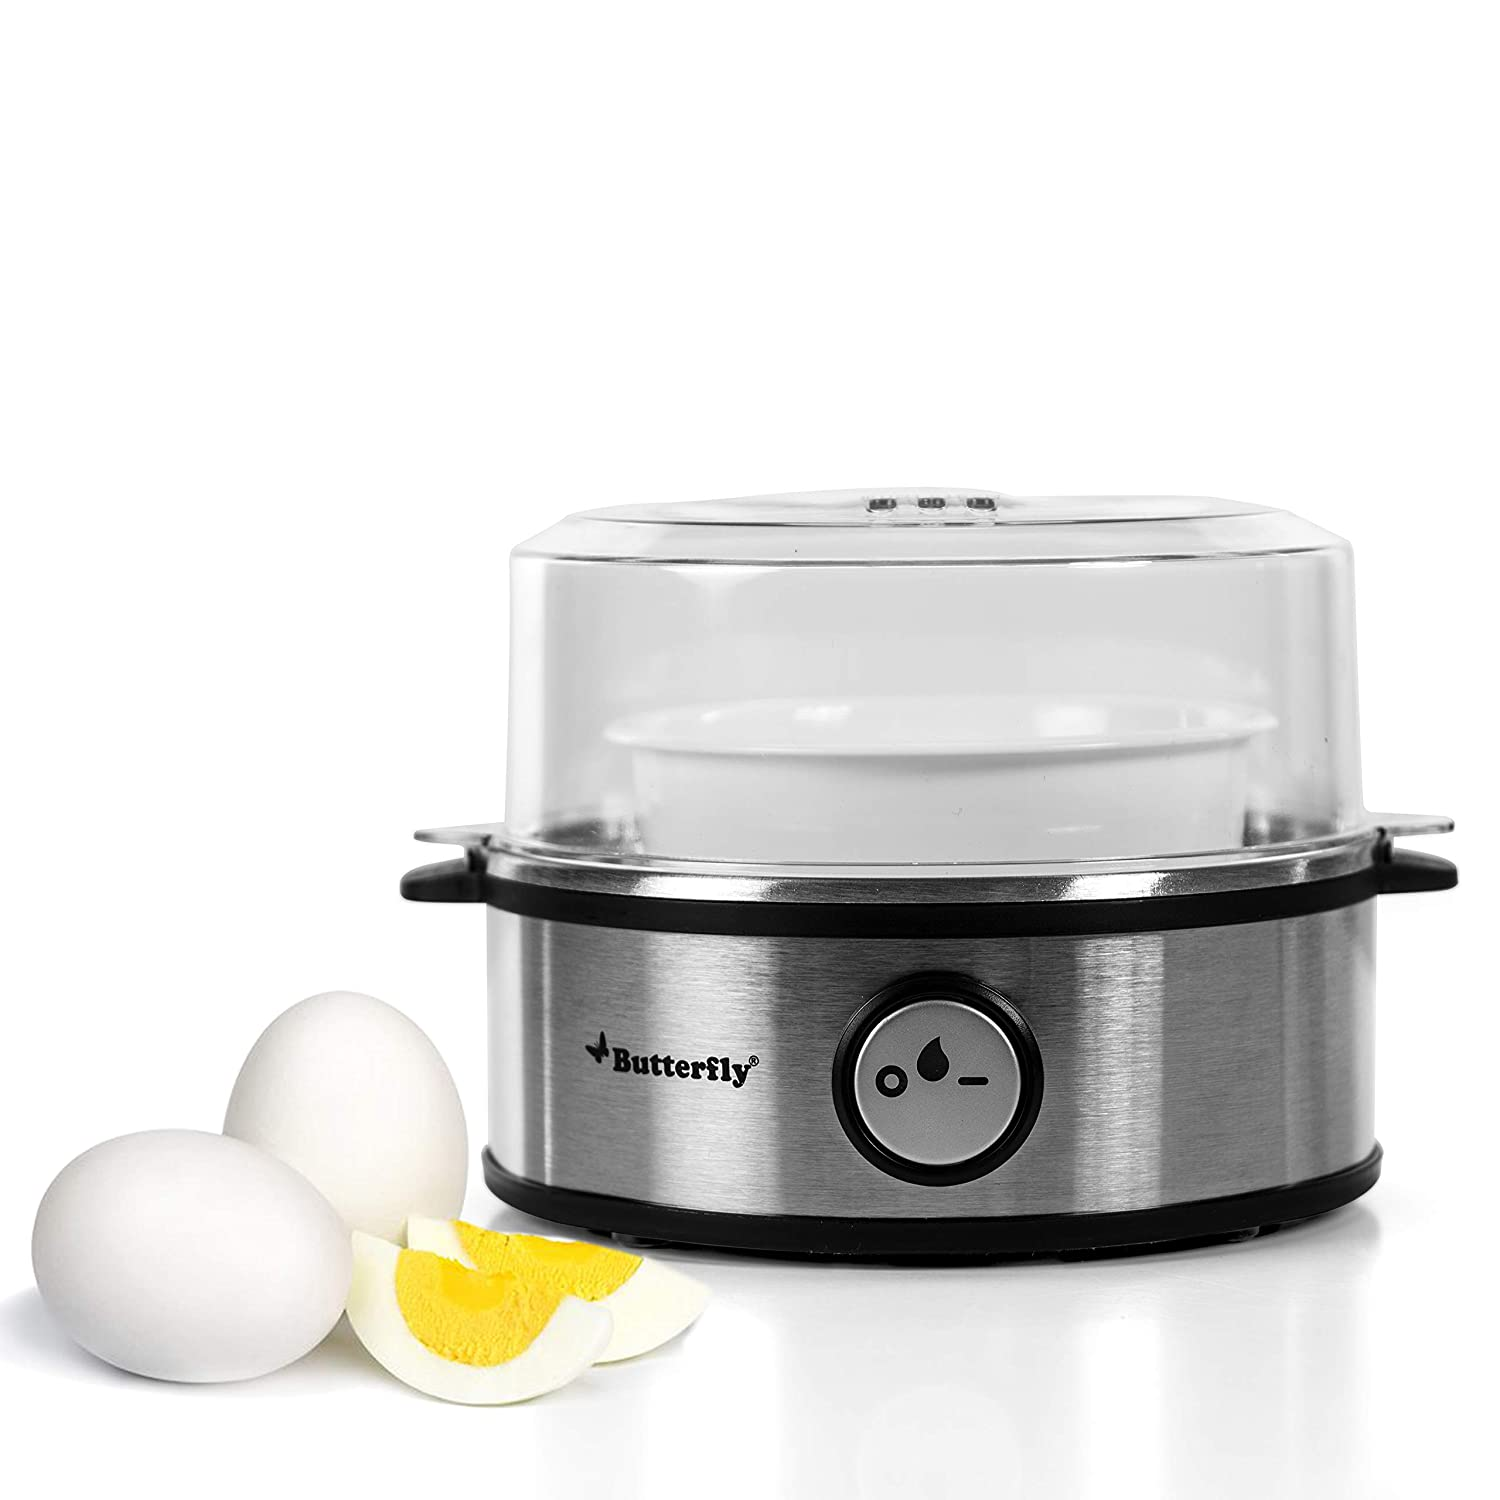 Butterfly Electric Egg Boiler Stainless steel